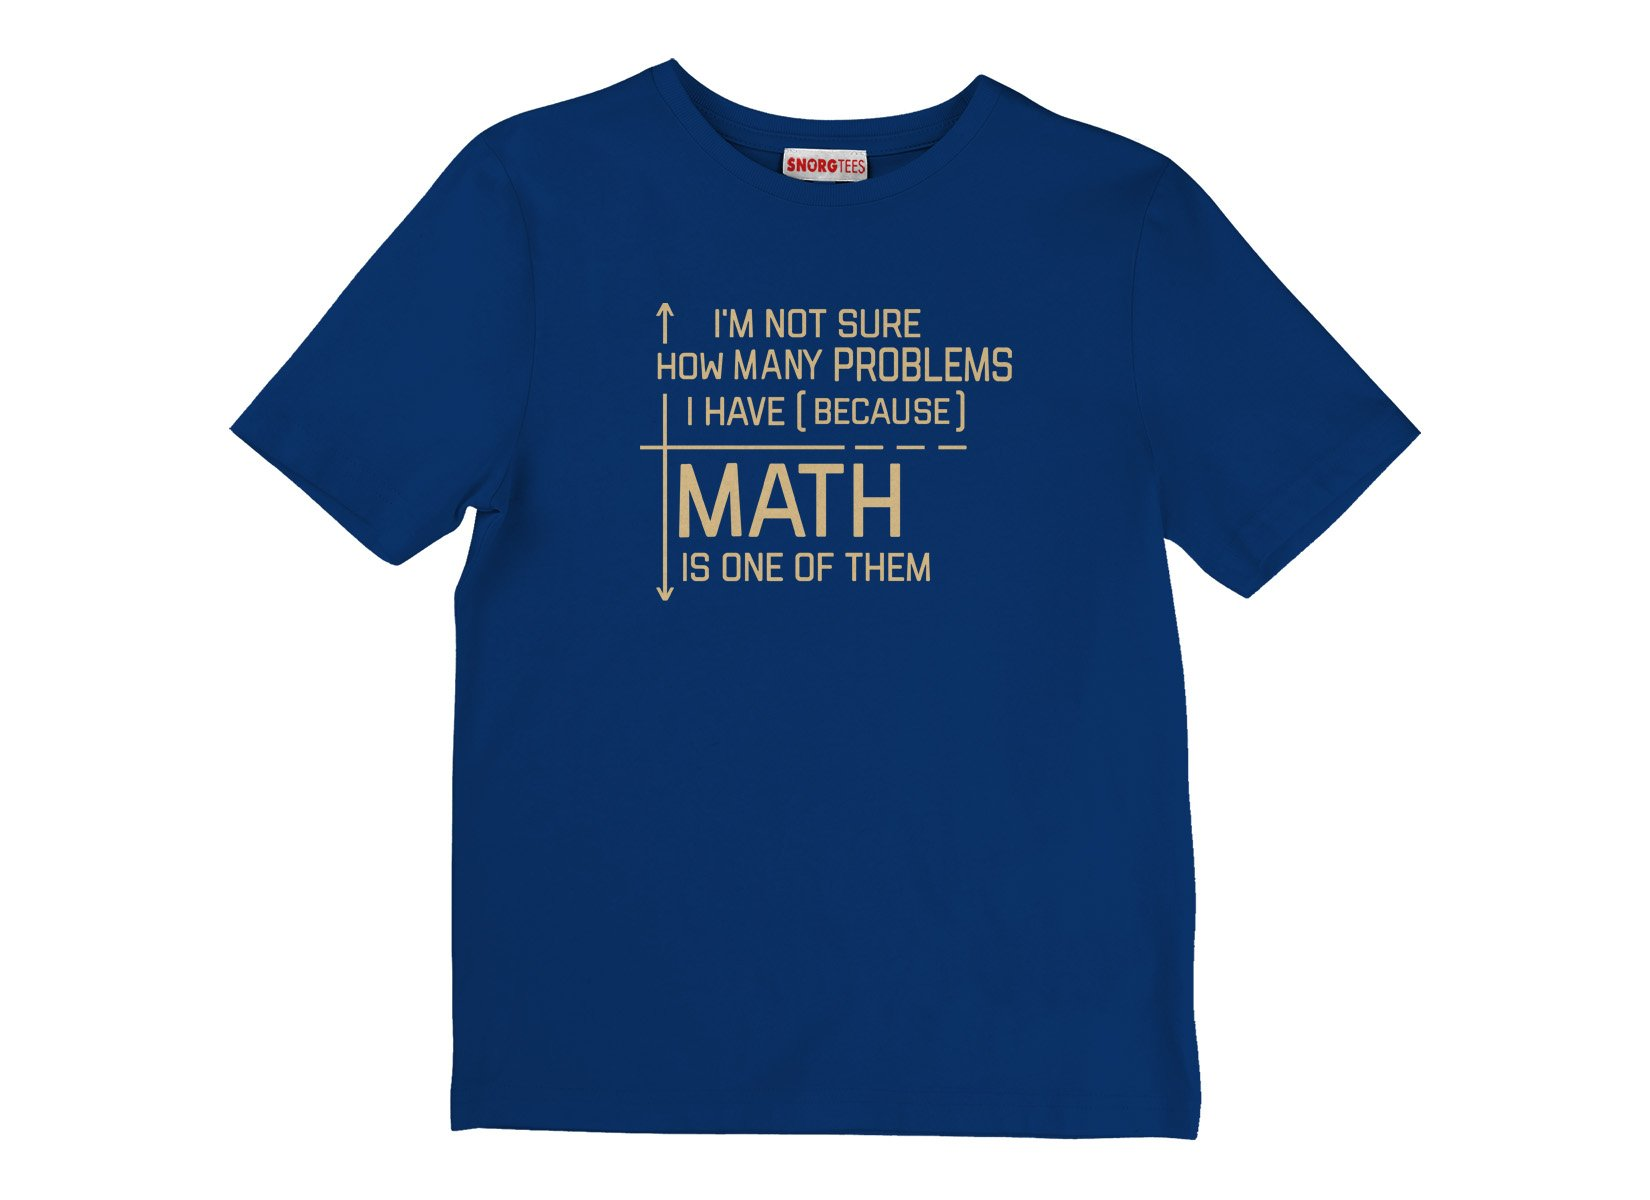 I'm Not Sure How Many Problems I Have on Kids T-Shirt